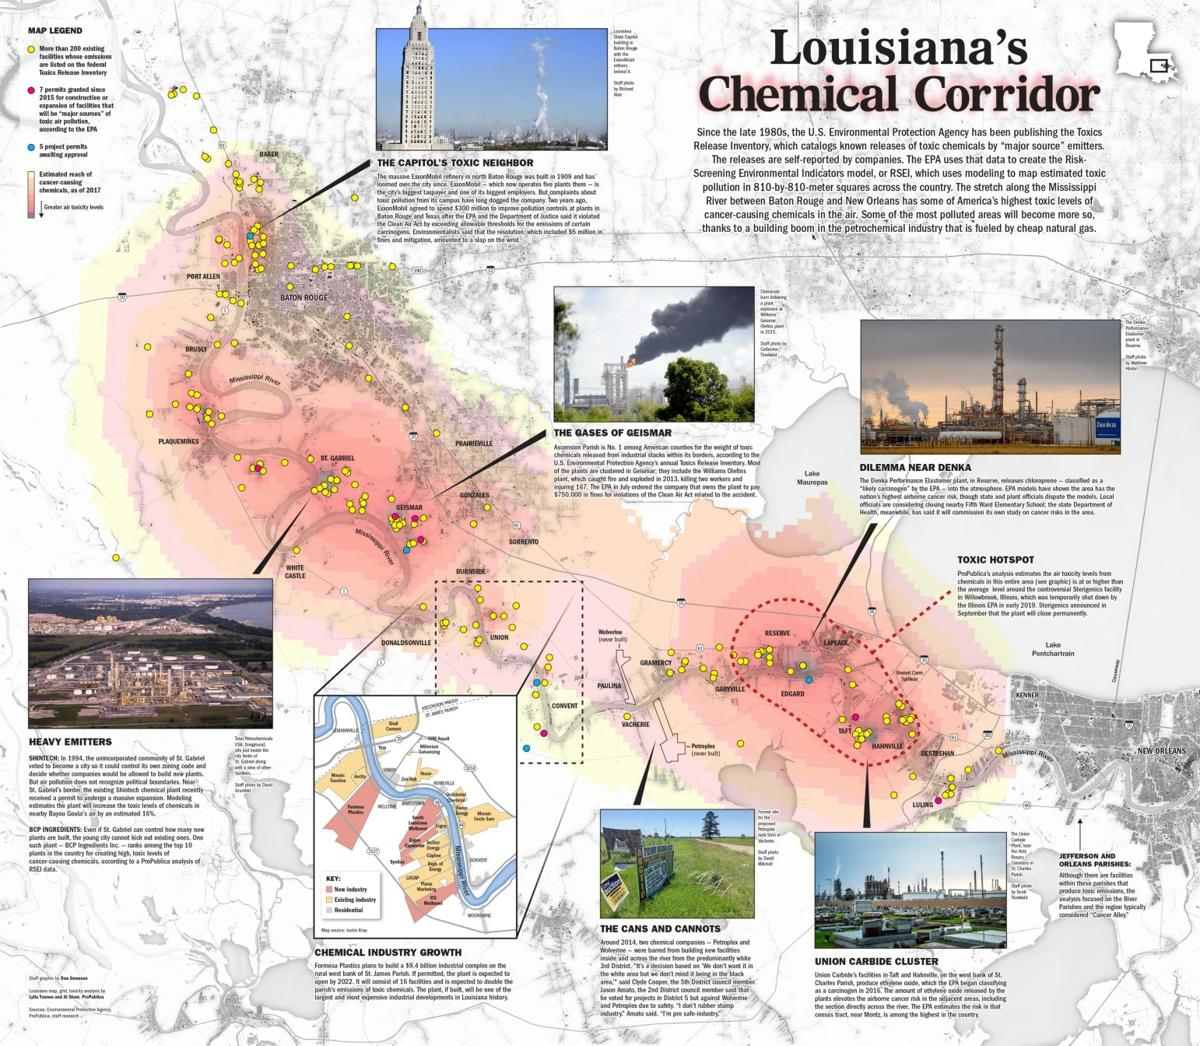 alley louisiana map Explore Louisiana S Chemical Corridor On This Two Page Newspaper alley louisiana map